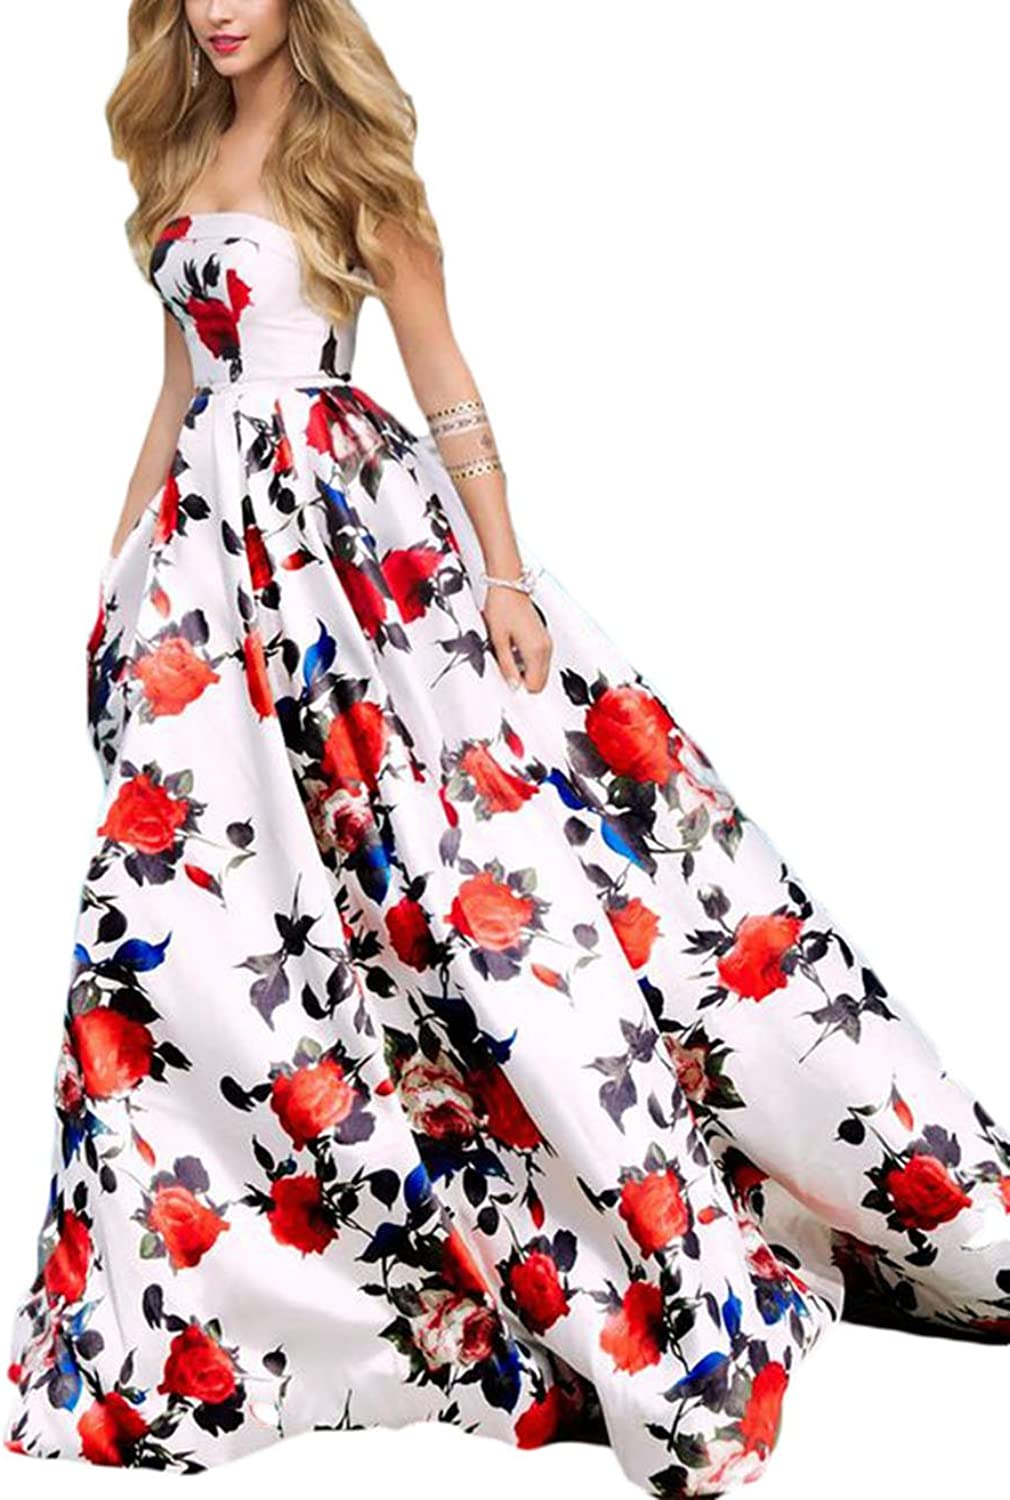 Ri Yun Sexy Strapless Princess Floral Prom Dresses Long 2018 Evening Gowns Formal Party Dresses for Women Ball Gown